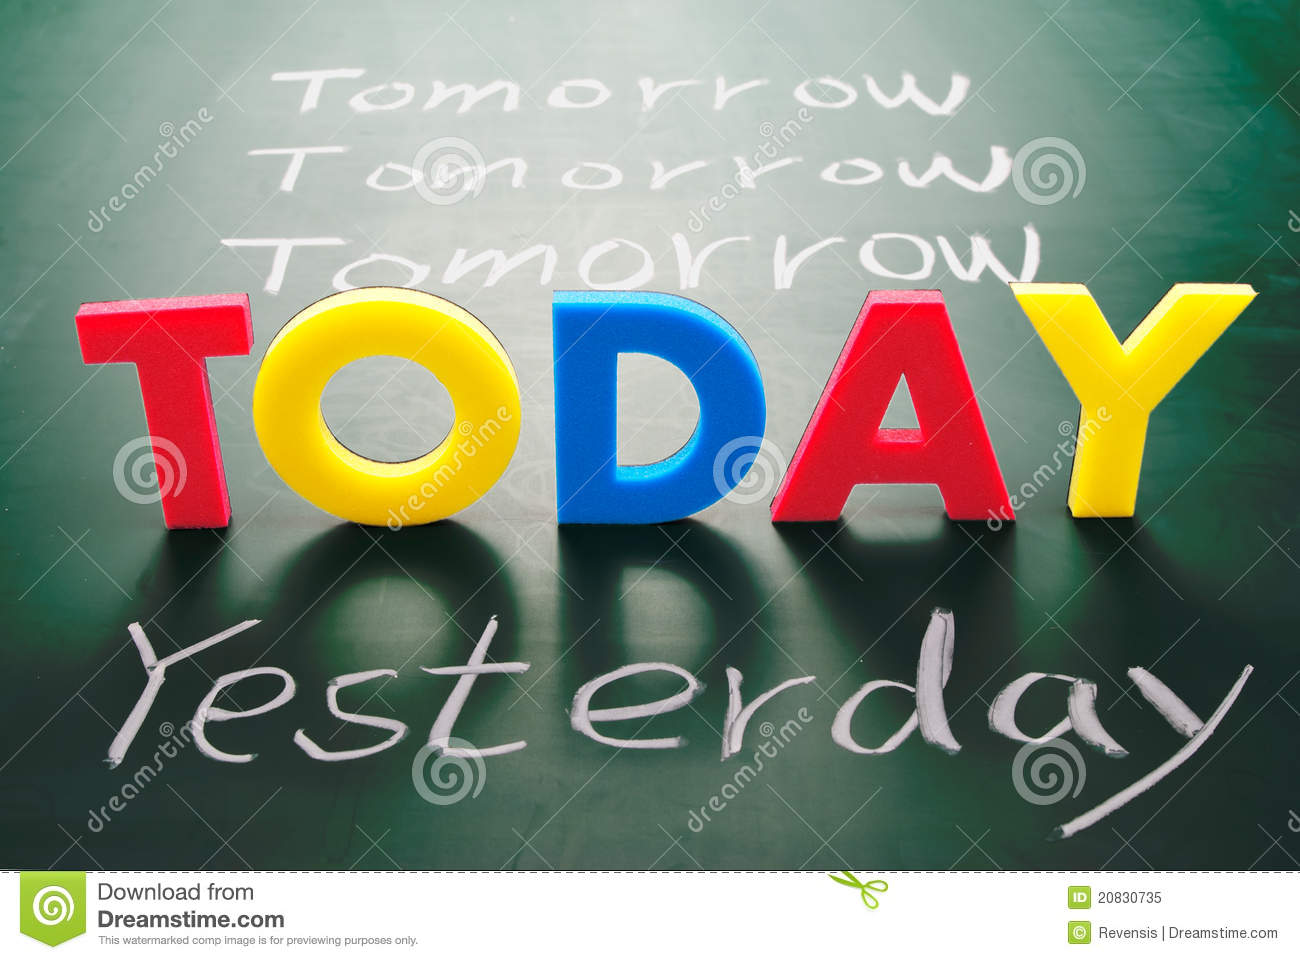 Today, yesterday, and tomorrow